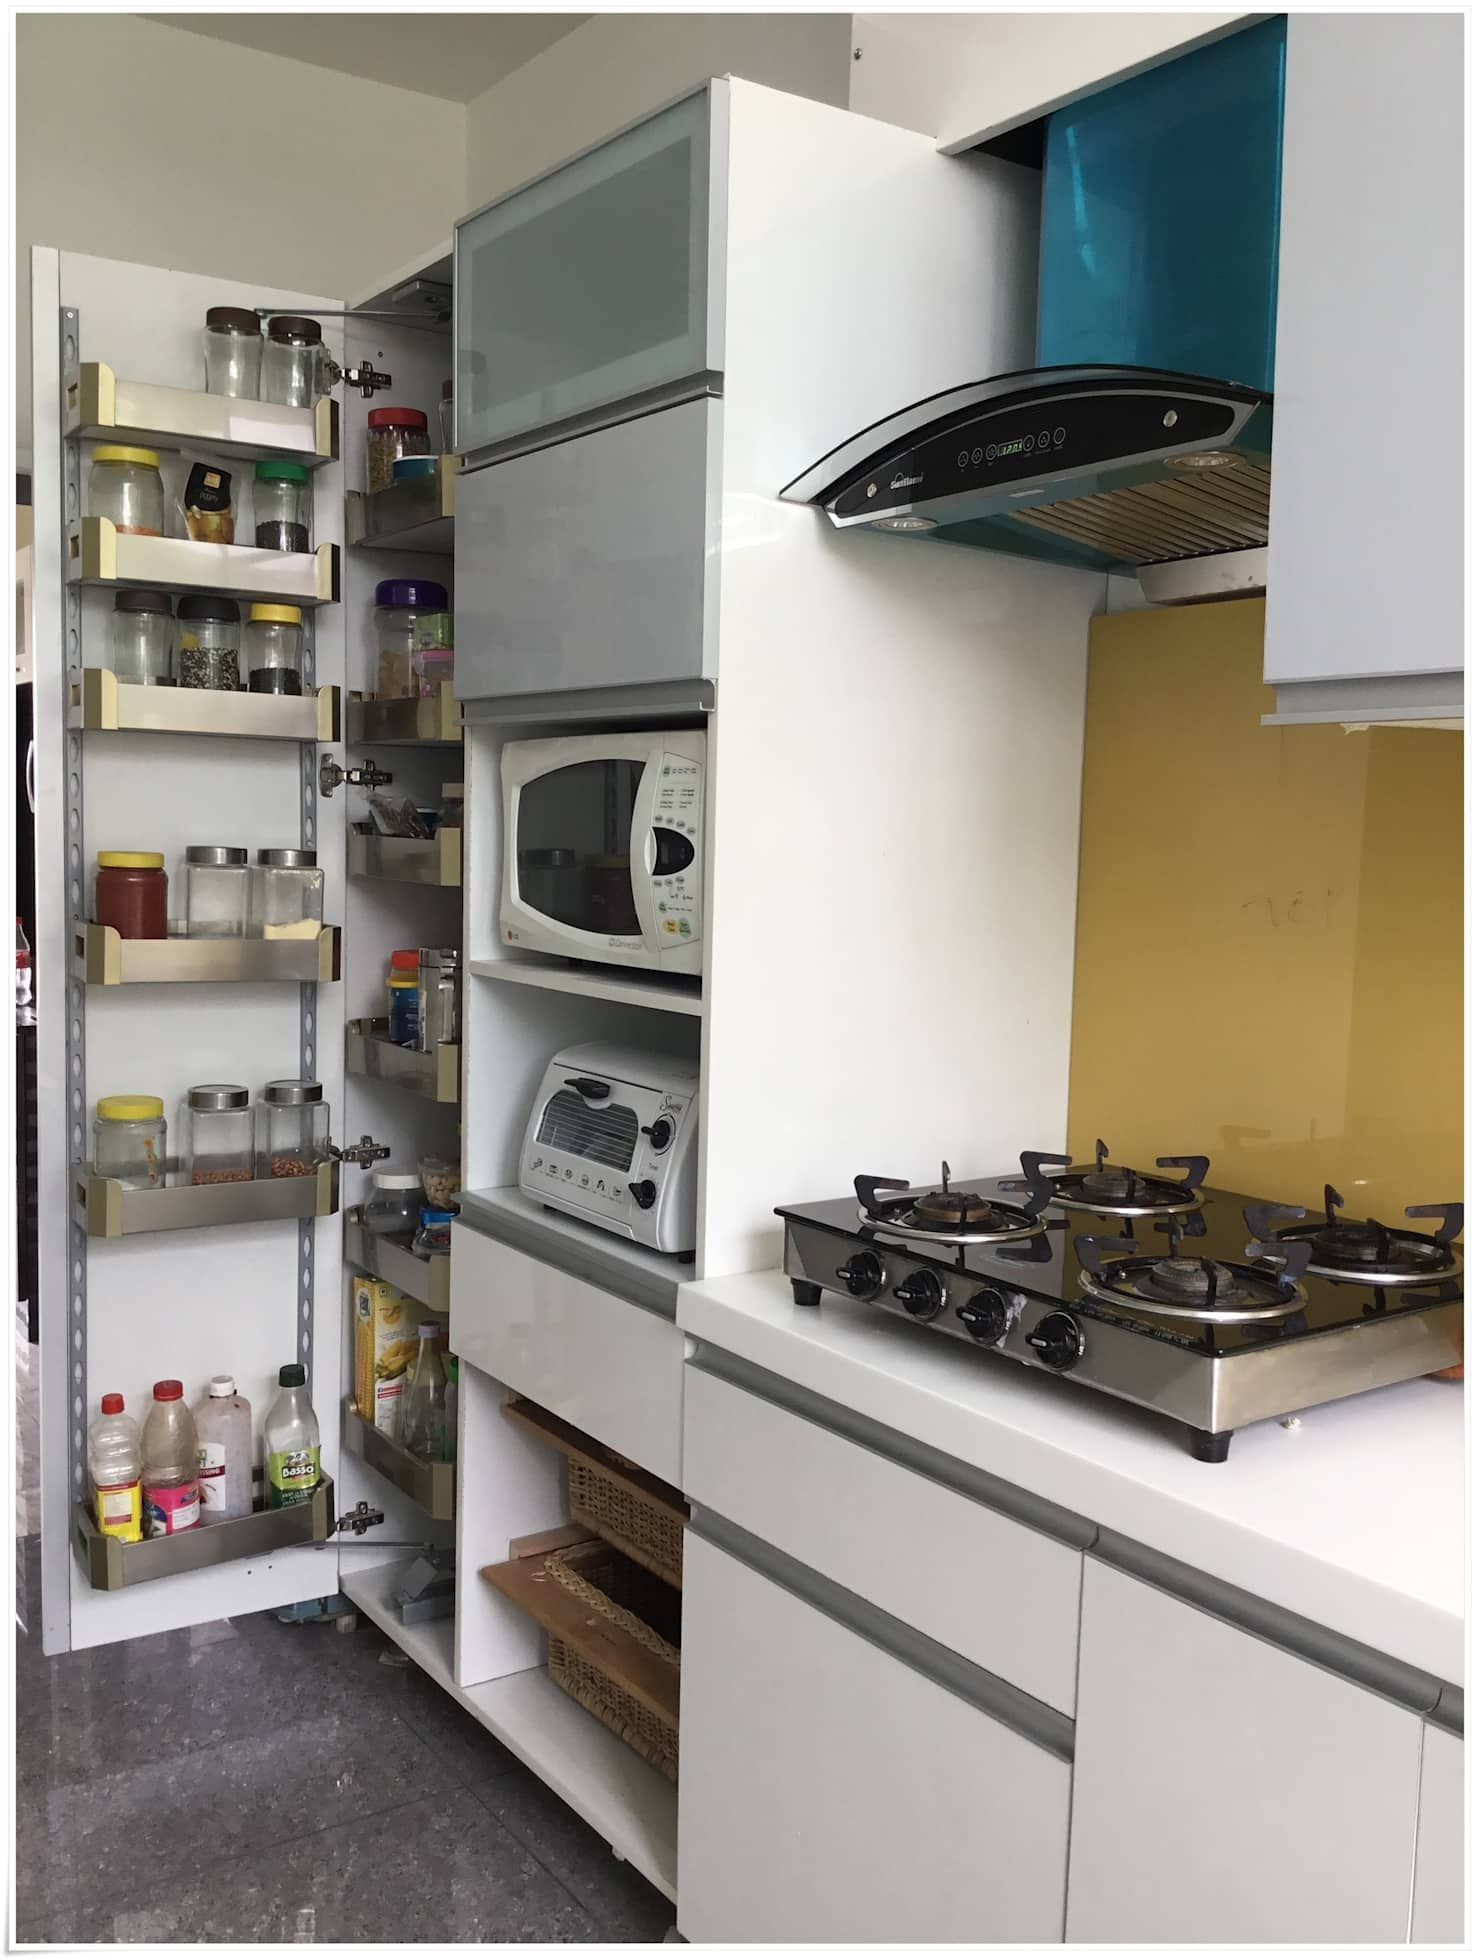 Tall Unit System In The Kitchen Modern Kitchen By U And I Designs Modern Homify Kitchen Tall Units Kitchen Room Design Dream Kitchens Design